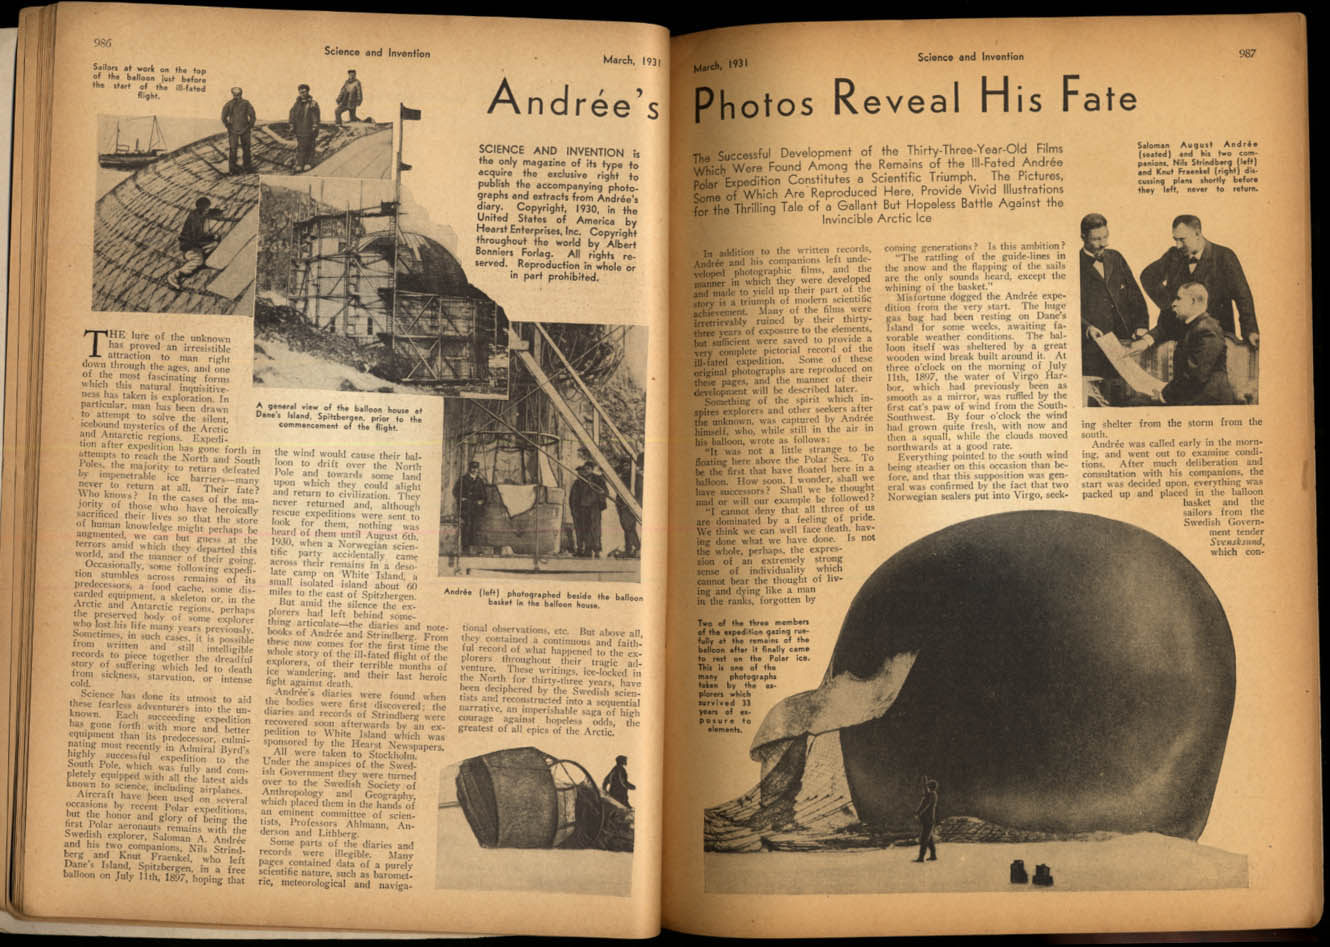 Image for SCIENCE & INVENTION 3 1931 Andree's Arctic Fate; Deep Sea with Williamson +